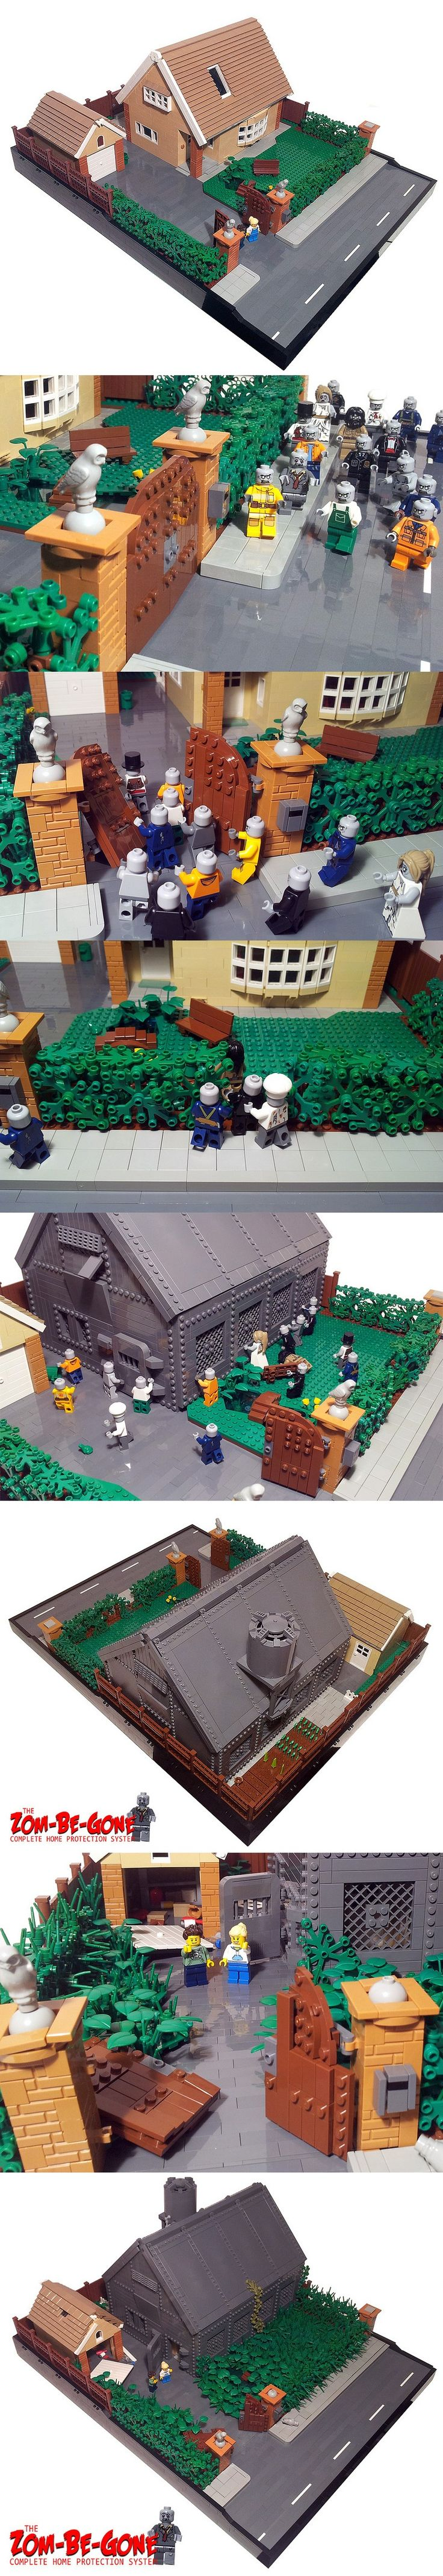 The Zom-Be-Gone Complete Home Protection System #LEGO